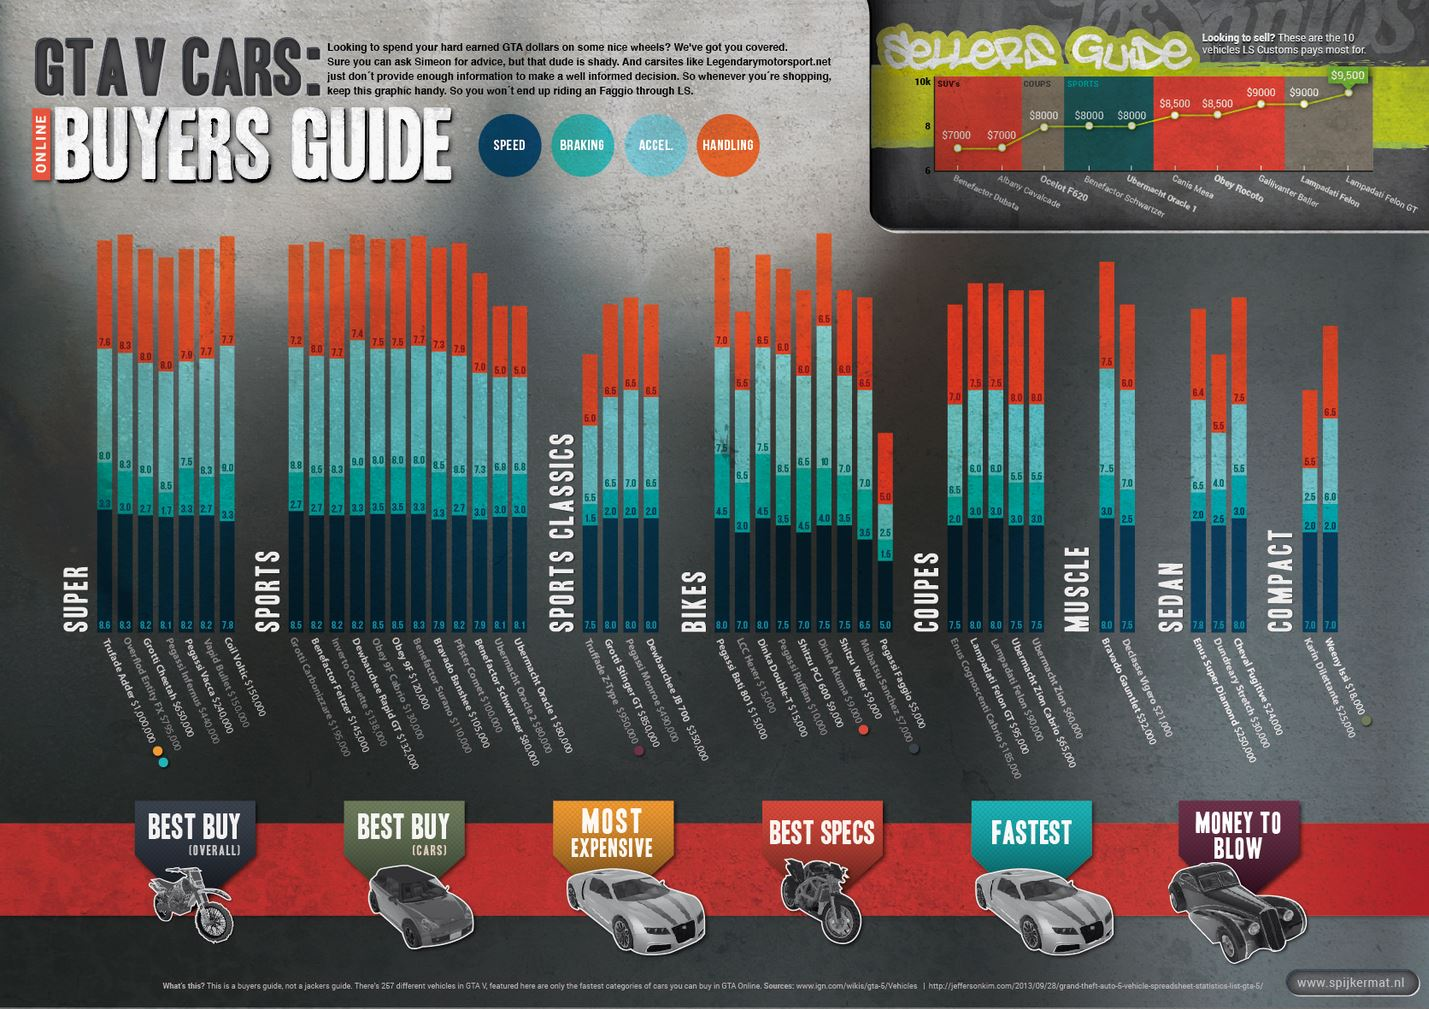 GTA 5 car buying guide